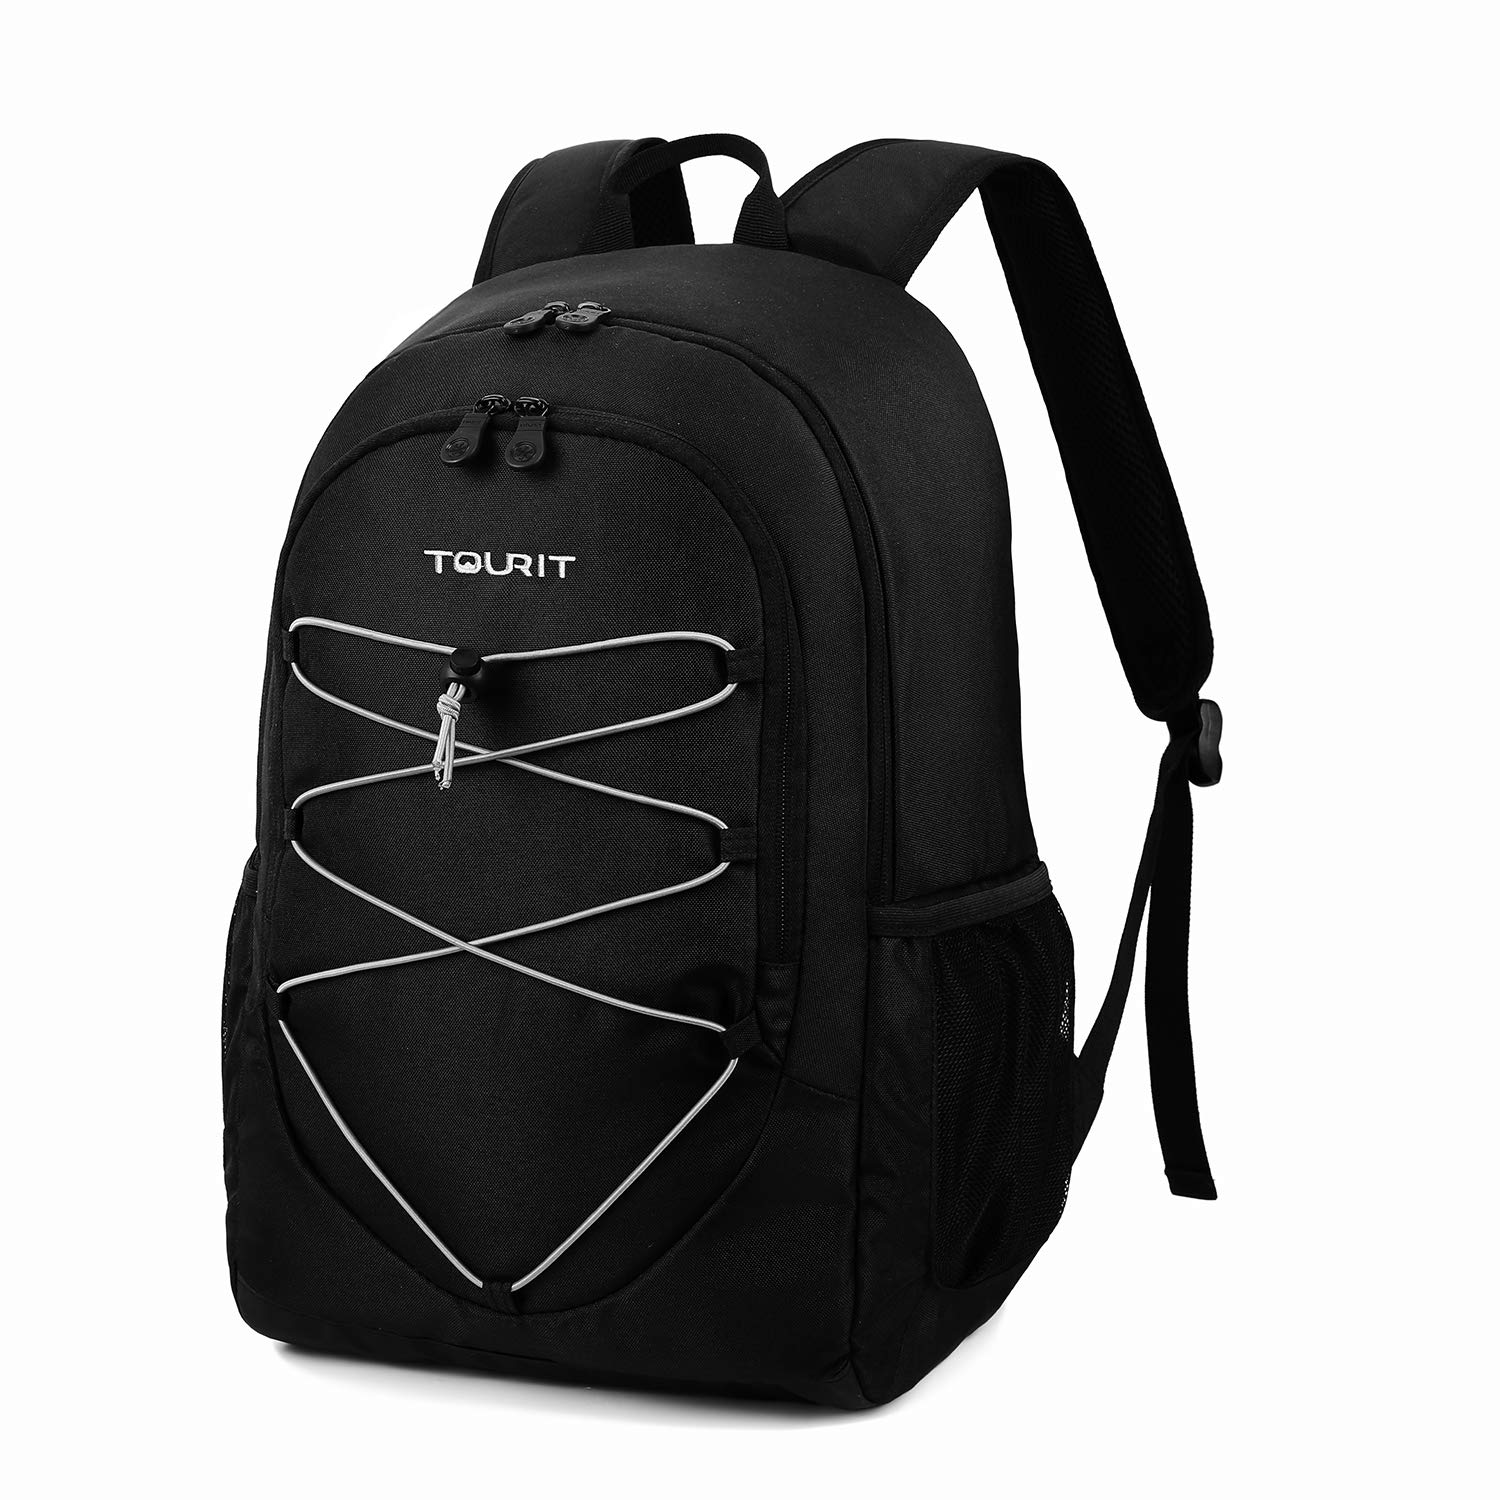 1607f490f6 TOURIT Cool Bag Rucksack Lightweight Cooler Bag Backpack 30 Cans Large  Capacity Insulated Rucksack Hiking Picnic Daypack for Men Women to Camping